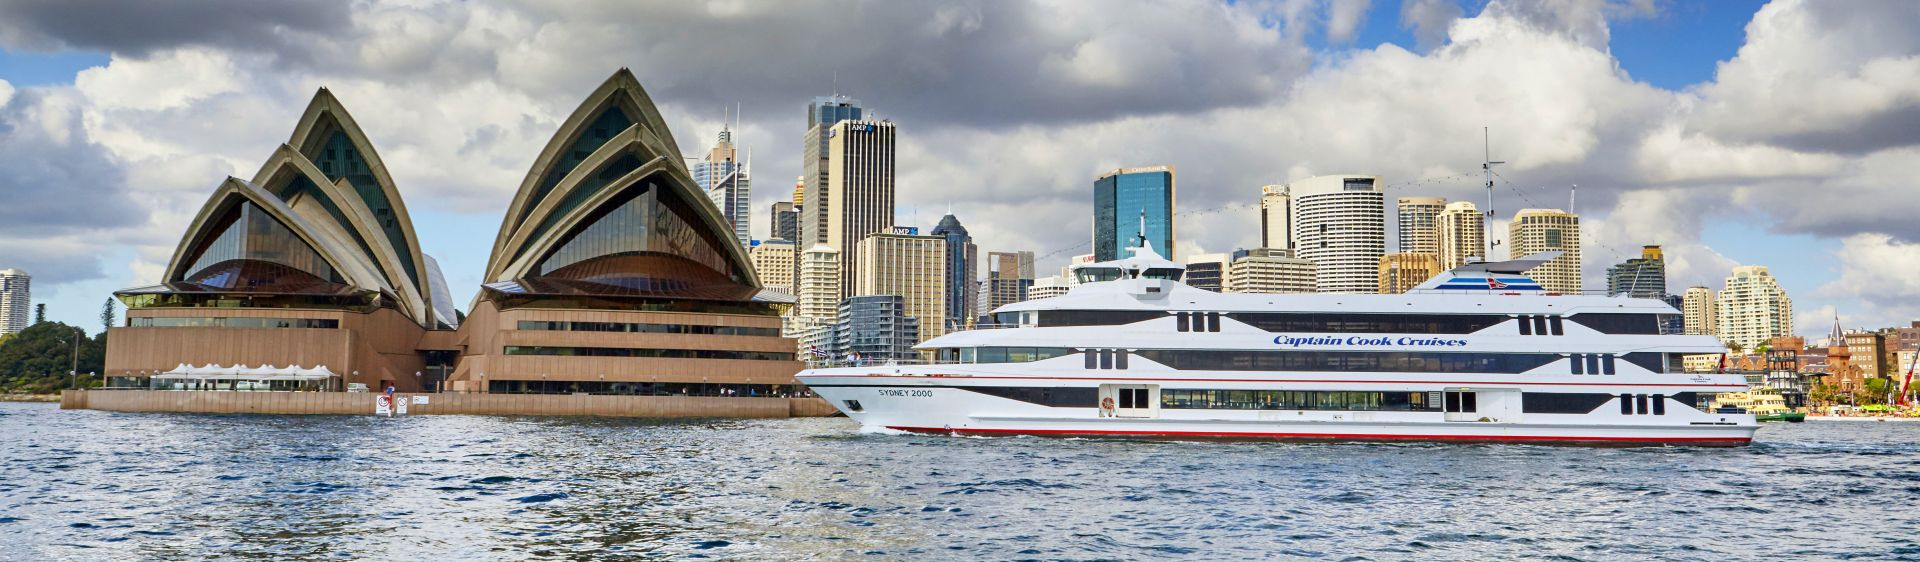 Sydney Harbour cruise passing the Sydney Opera House